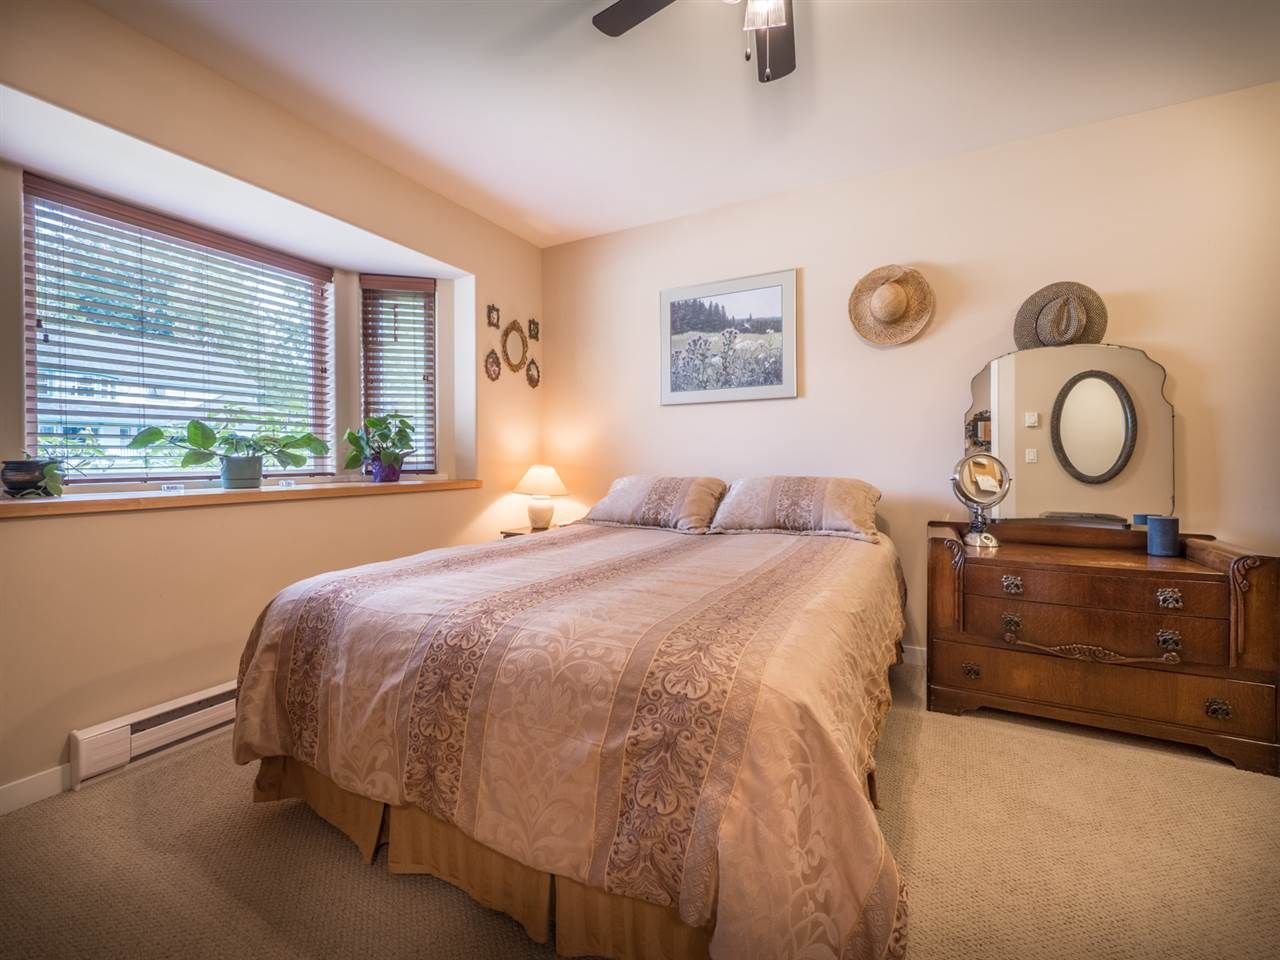 Photo 17: Photos: 6335 PICADILLY Place in Sechelt: Sechelt District House for sale (Sunshine Coast)  : MLS®# R2248834